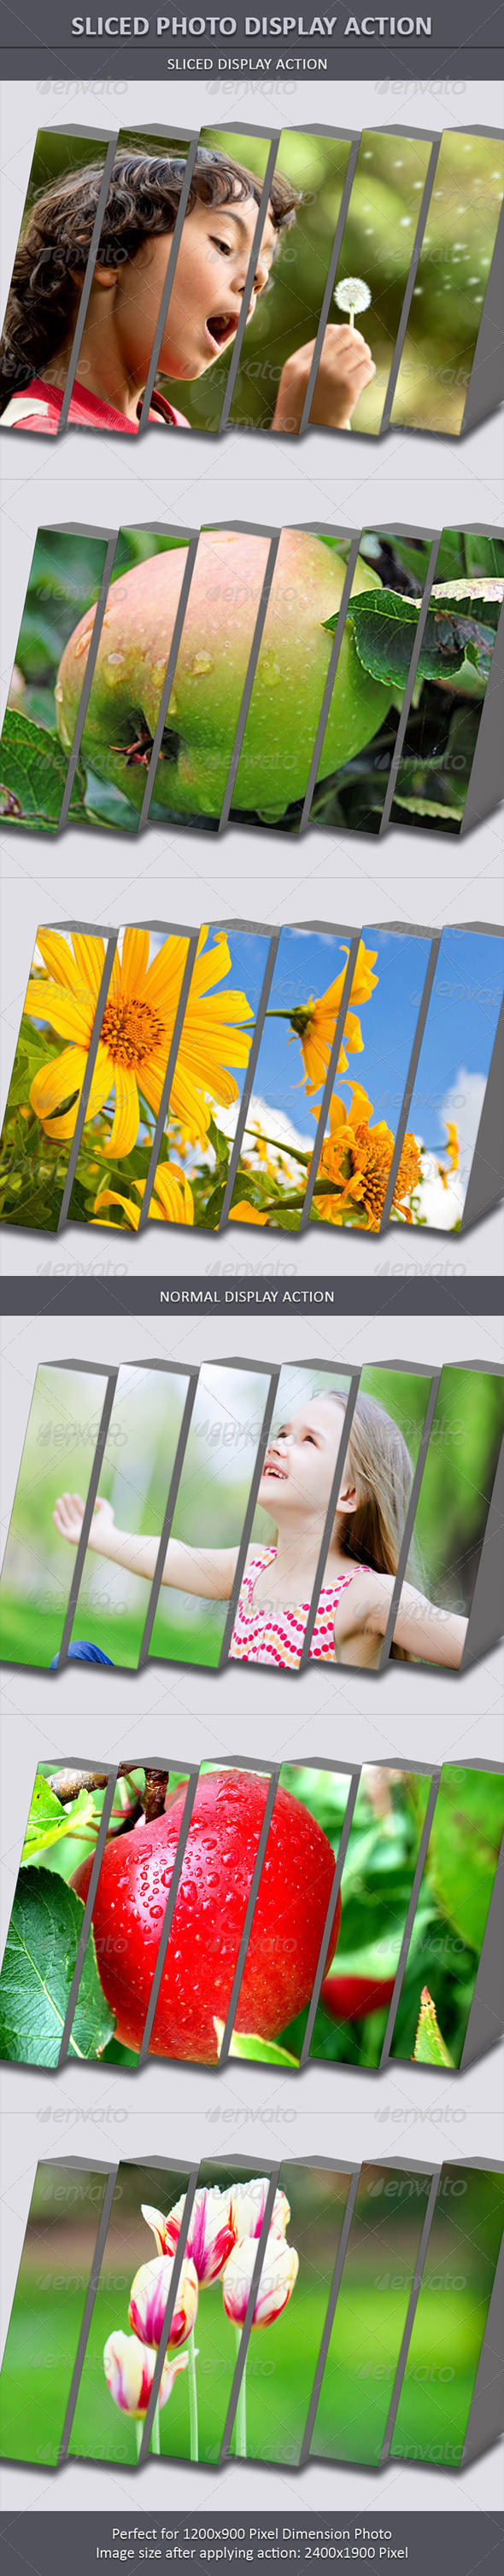 GraphicRiver Sliced Photo Display Action 6485662